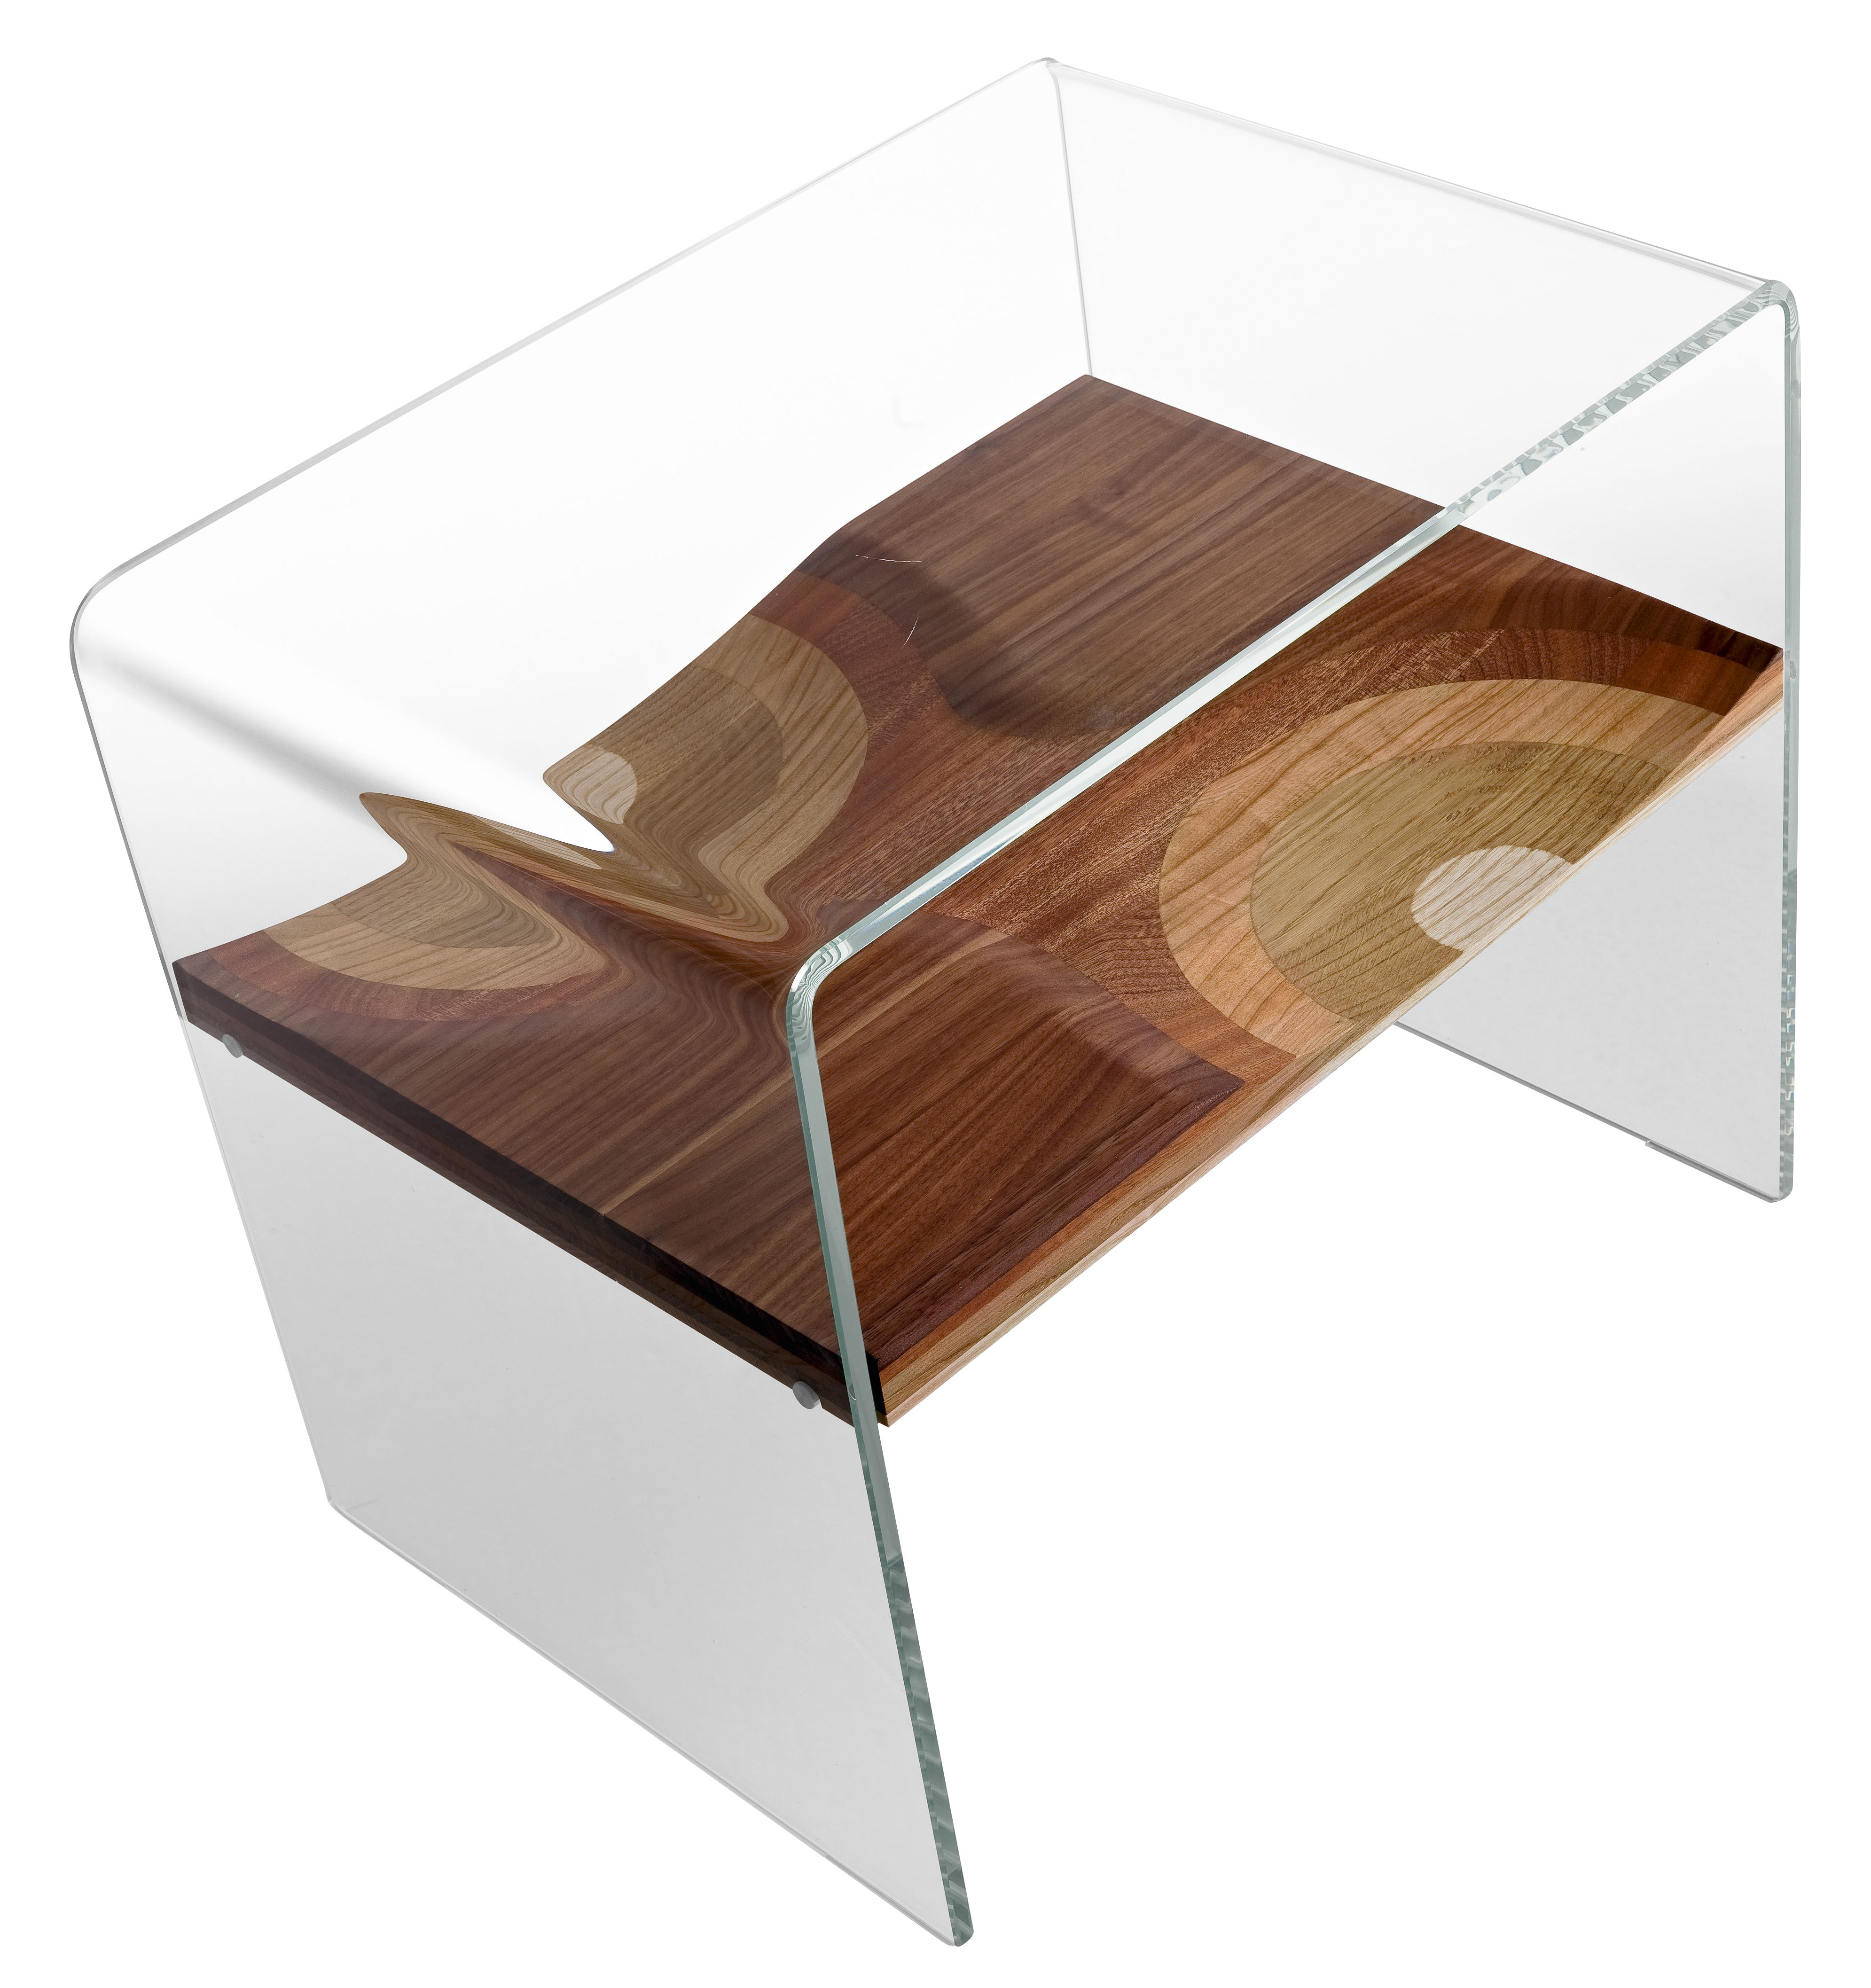 Furniture - Bedside & End tables - Bifronte Bedside table by Horm - Clear - Laminated wood, Soak glass